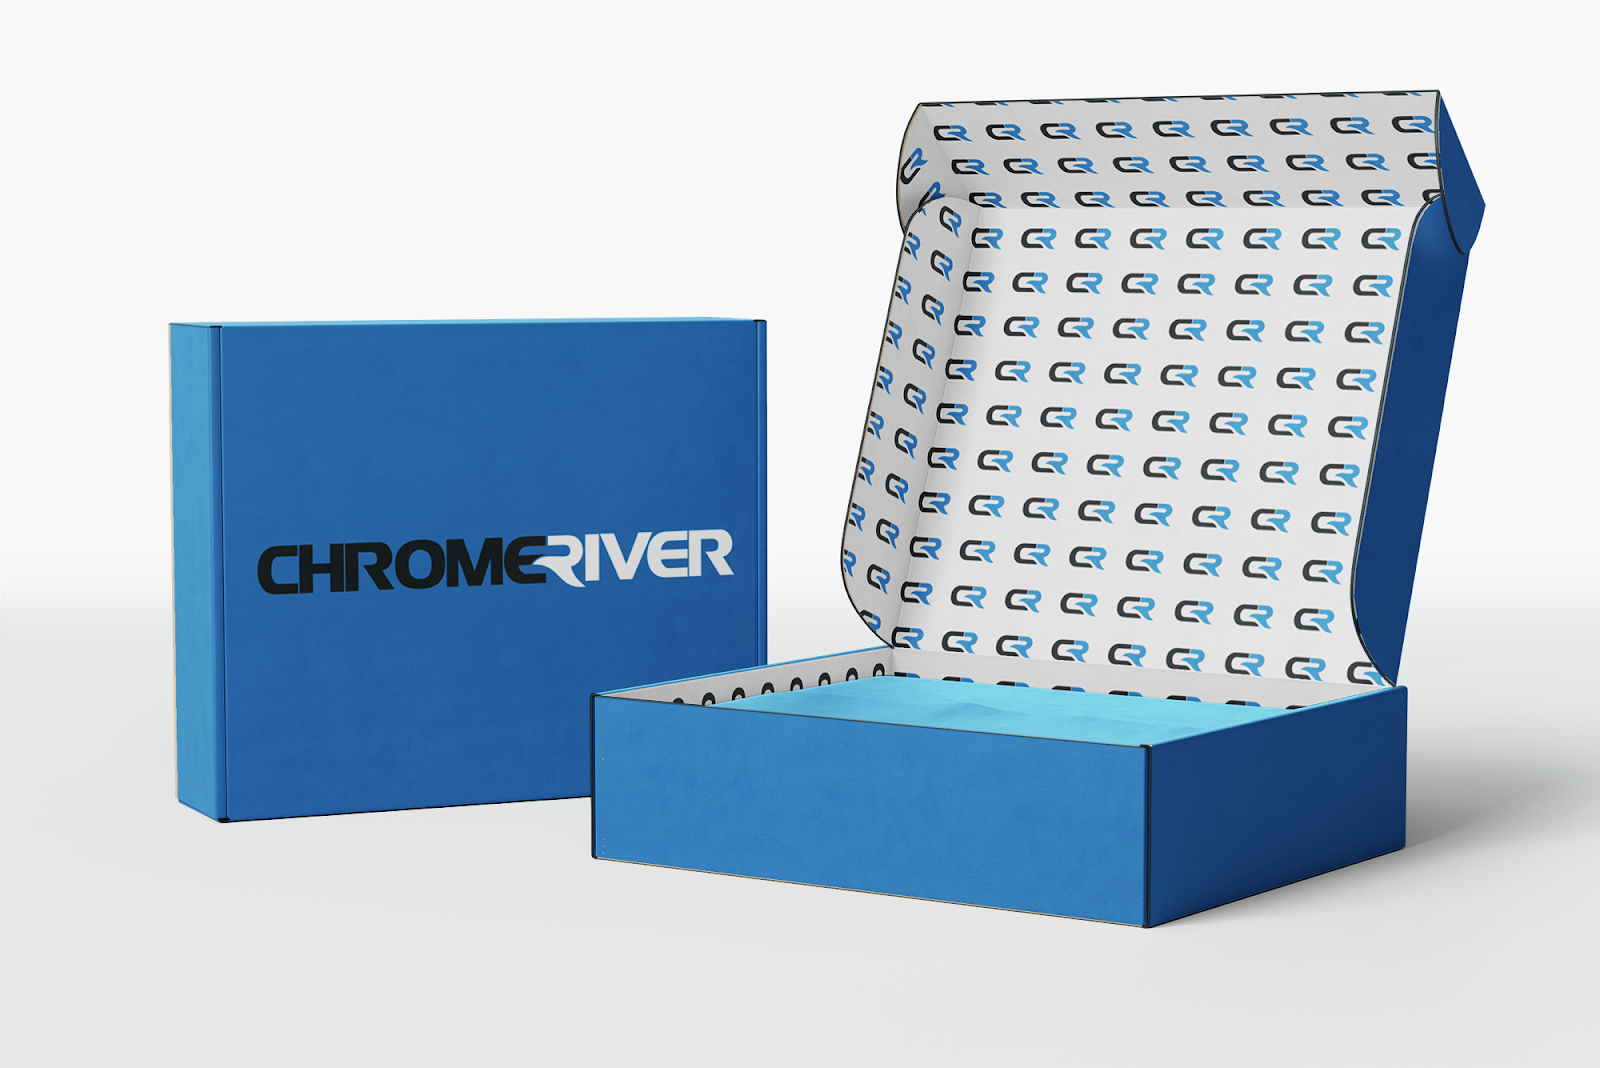 chrome river's custom branded box idea leveraging their logo